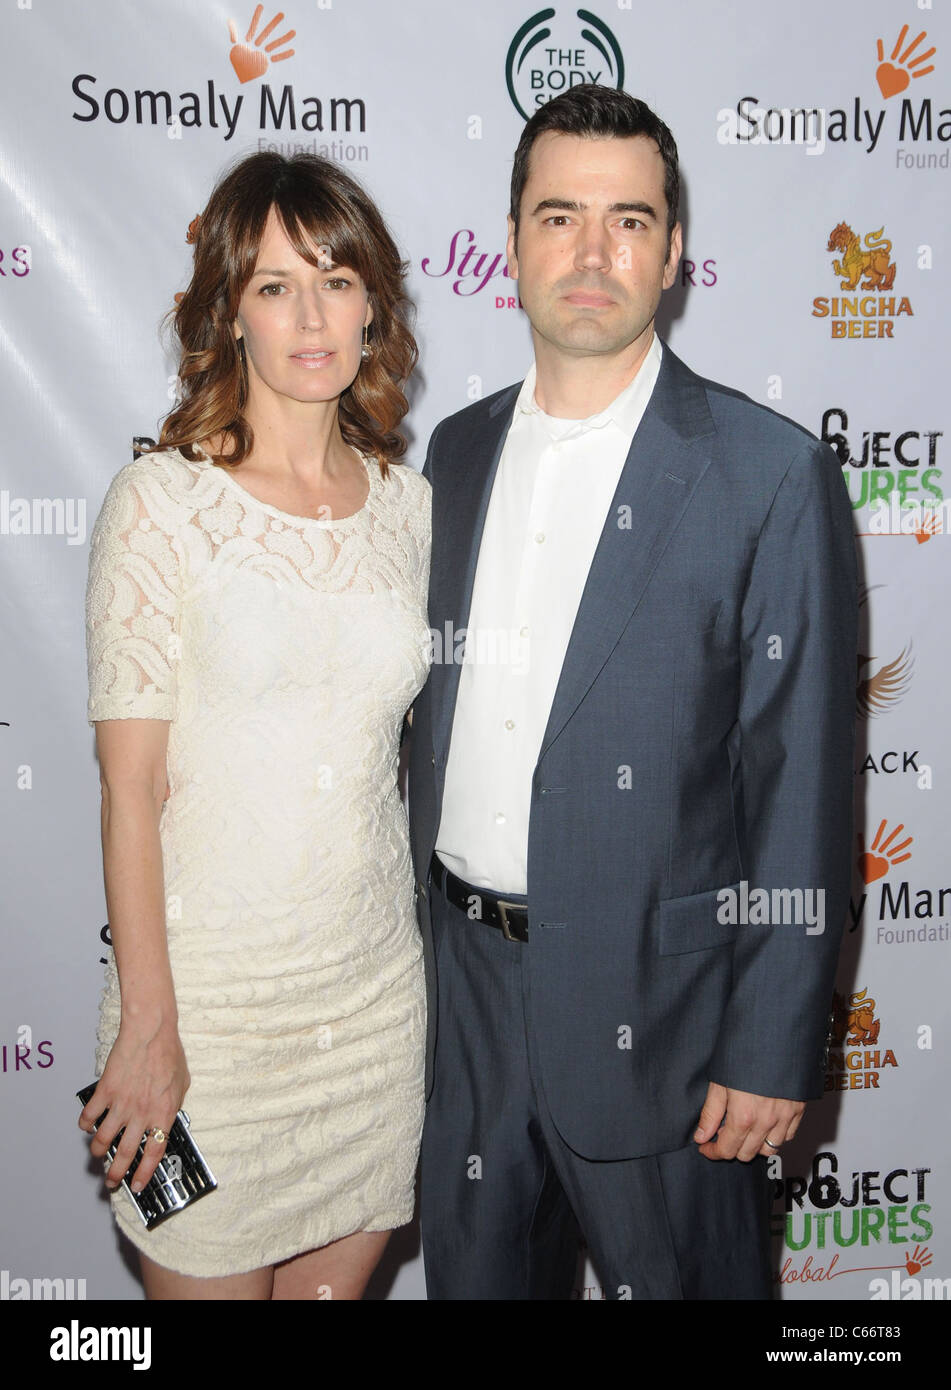 Rosemarie DeWitt, Ron Livingston at arrivals for Somaly Mam Foundation's Project Futures Global Campaign Launch, - Stock Image